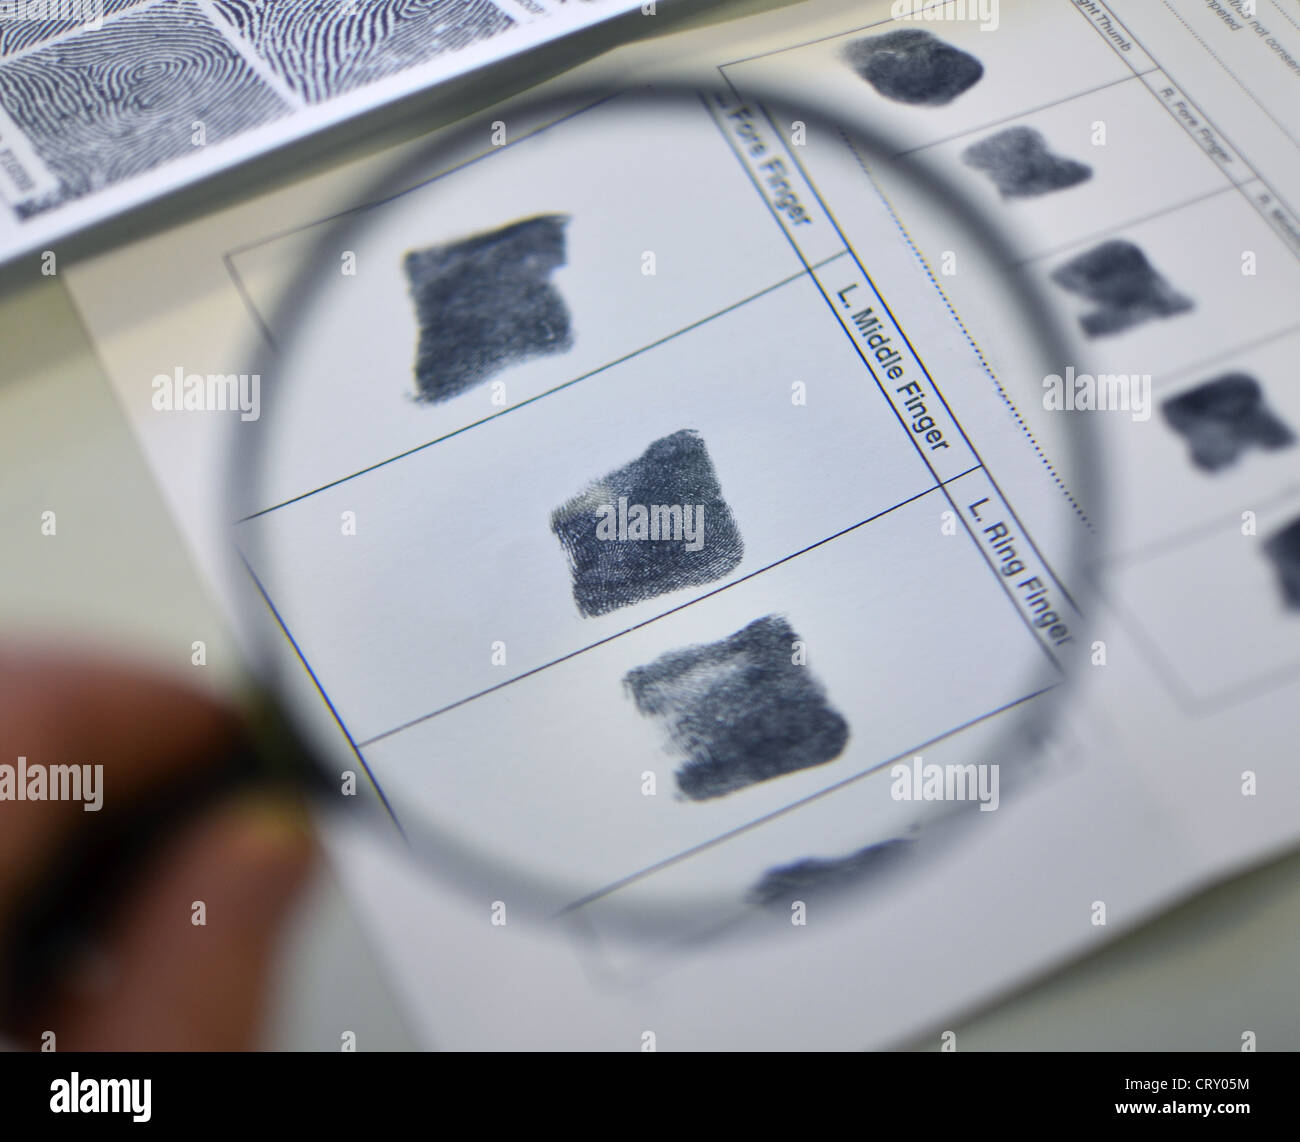 Looking at elimination finger prints through a magnifying glass - Stock Image